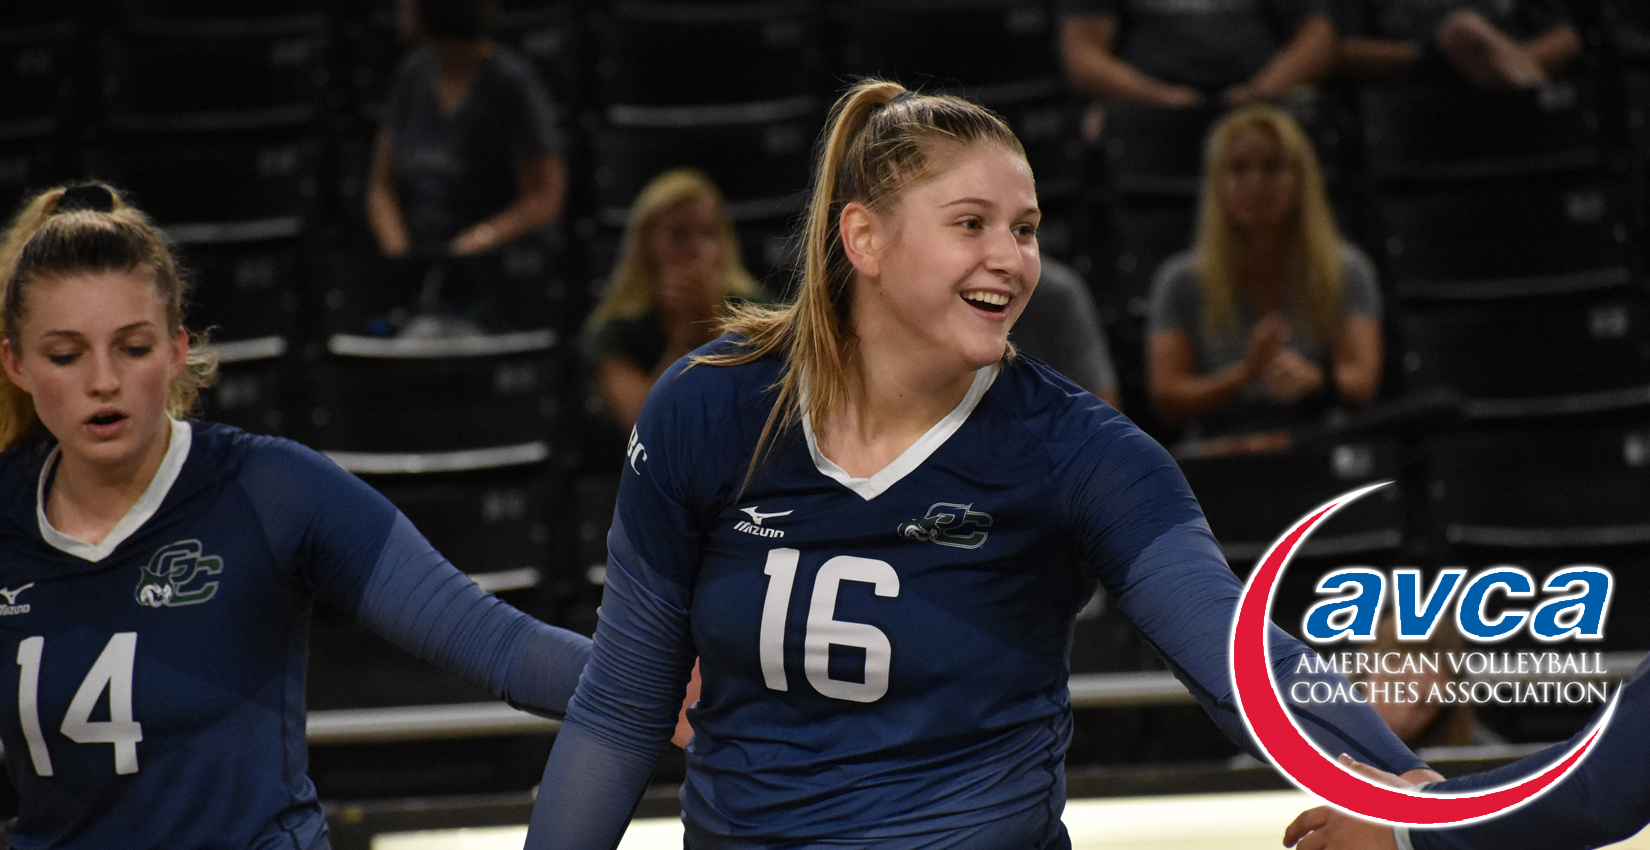 Taylor Svehla Named to All-American Honorable Mention List